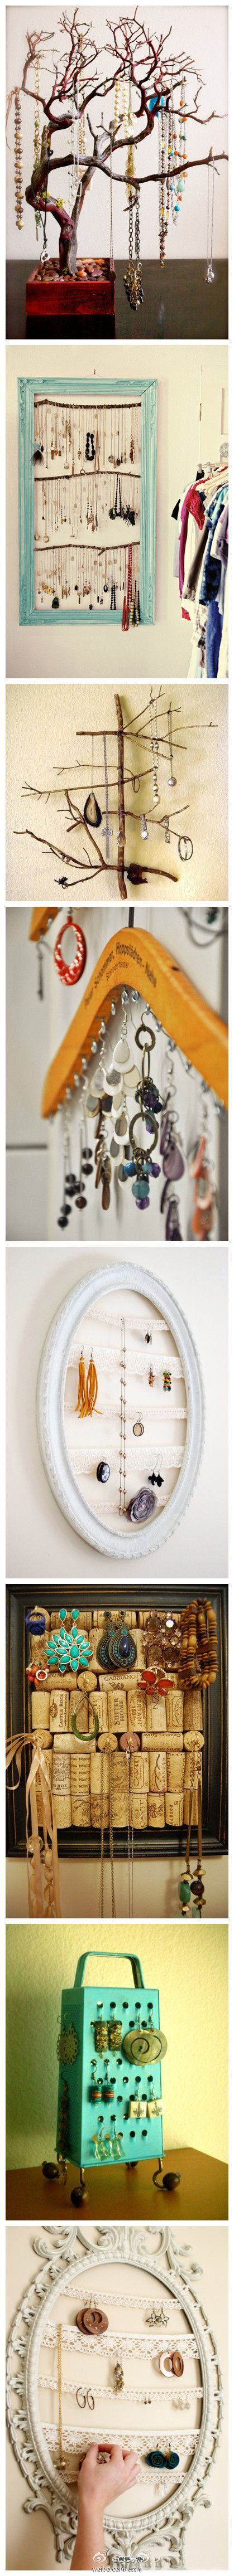 DIY deas on creative ways to organize